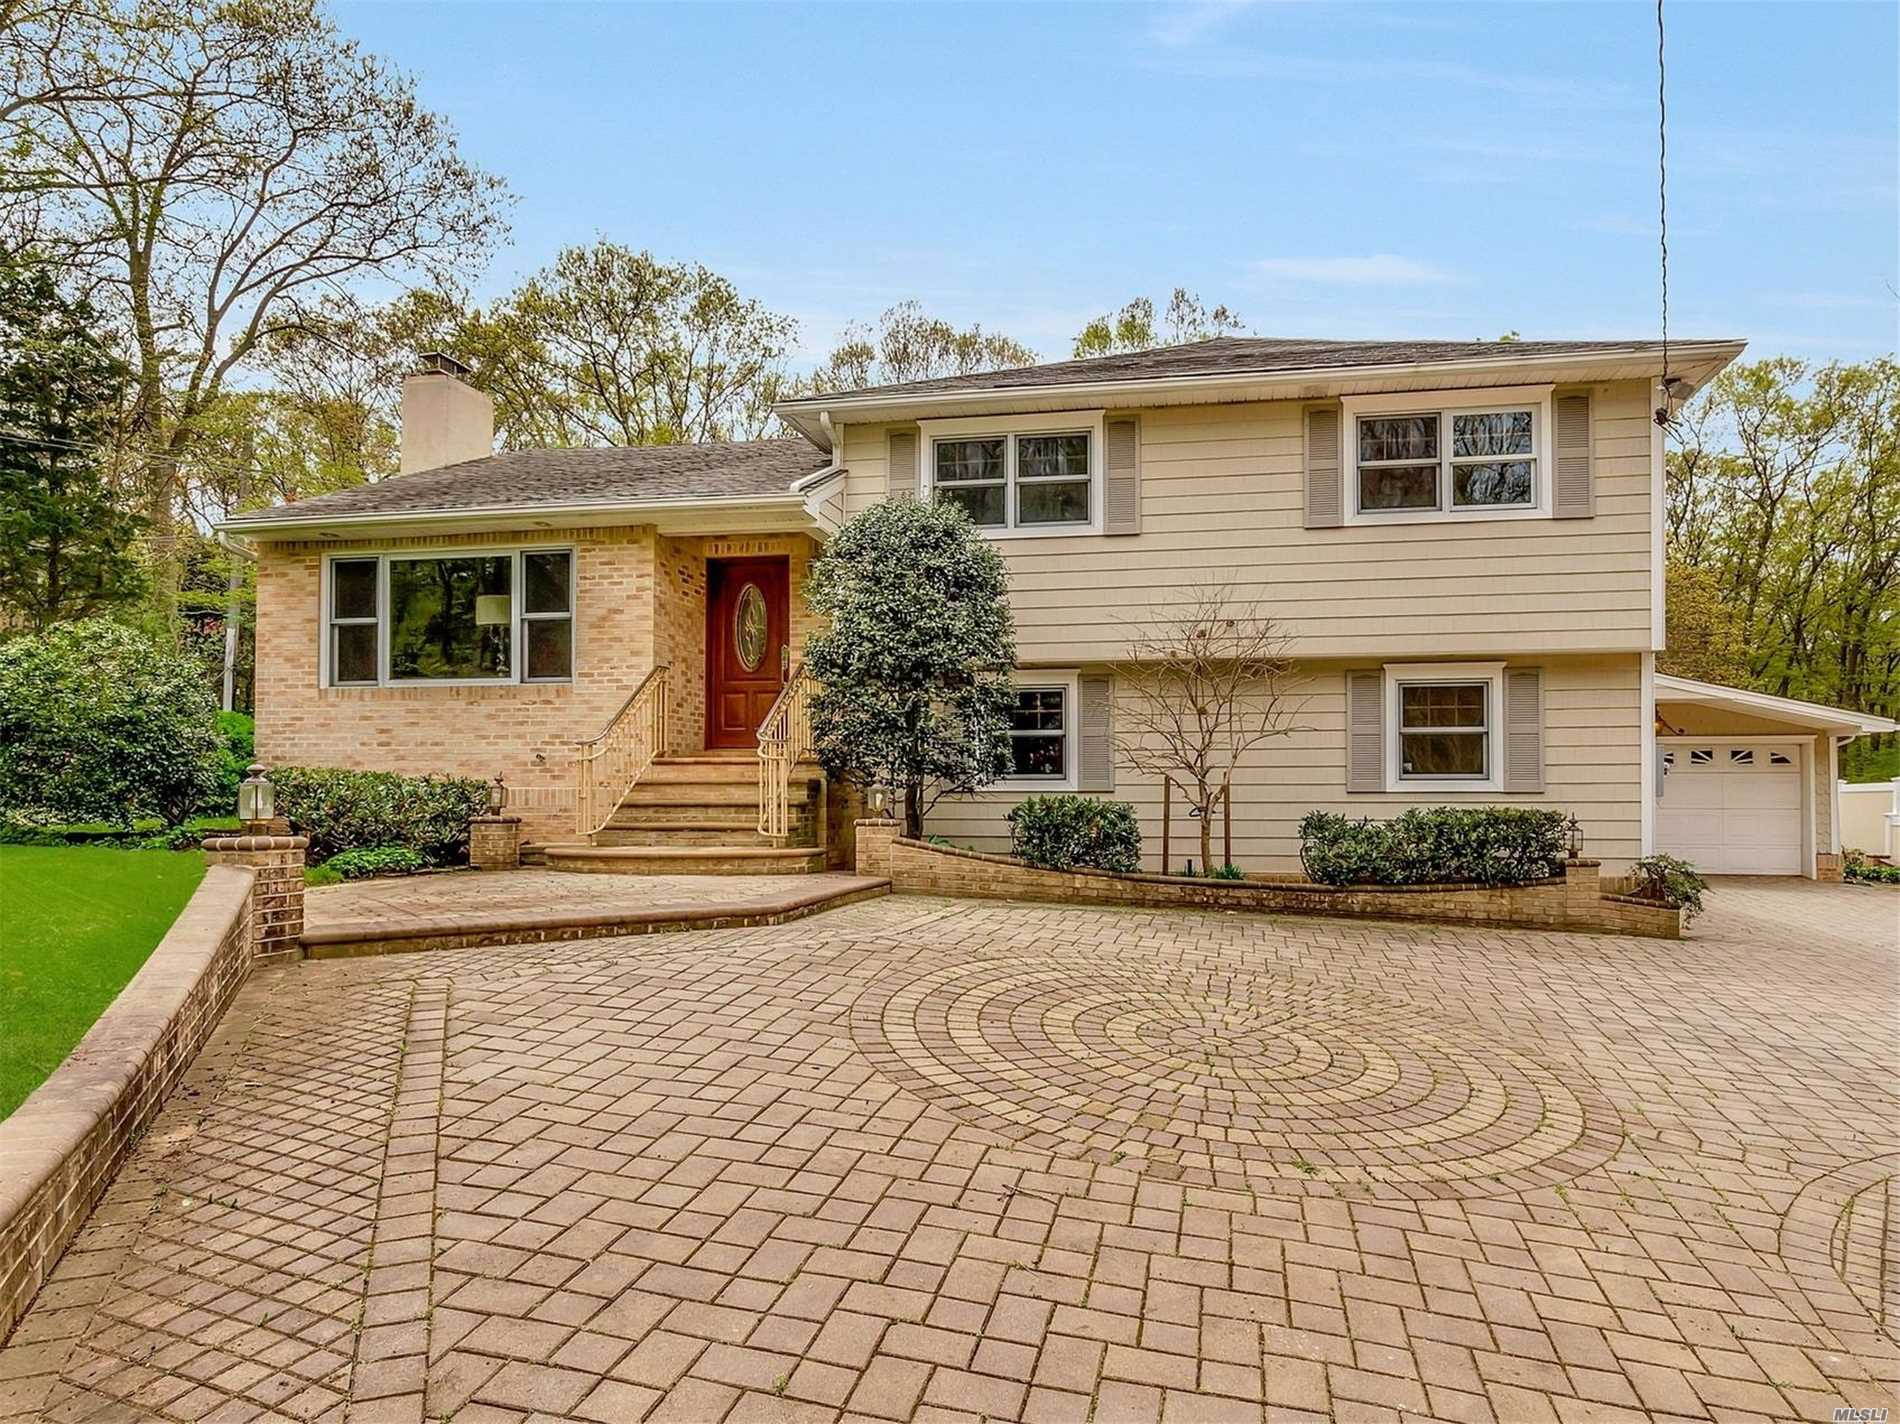 Photo of home for sale at 157 Deforest Rd, Dix Hills NY